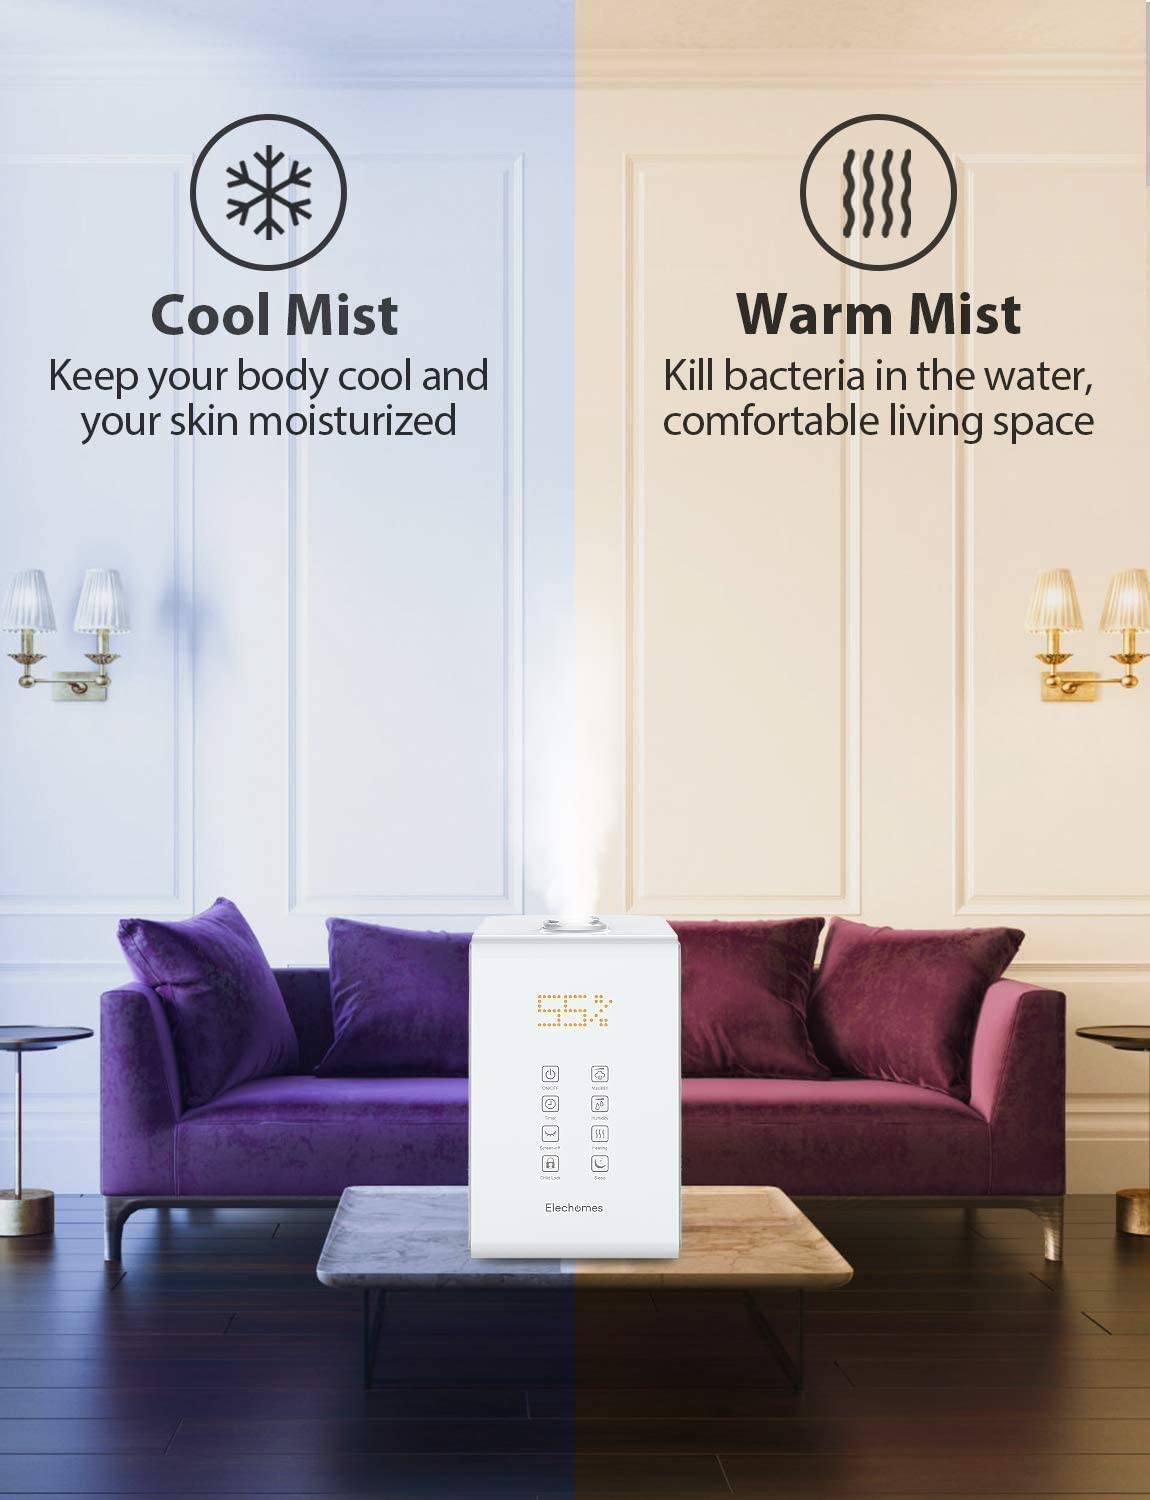 Elechomes Warm and Cool Mist Humidifiers, SH8820 Top Fill 5.5L Humidifier for Large Room Bedroom Plants with Remote Control, 20db Ultra Quiet, LED